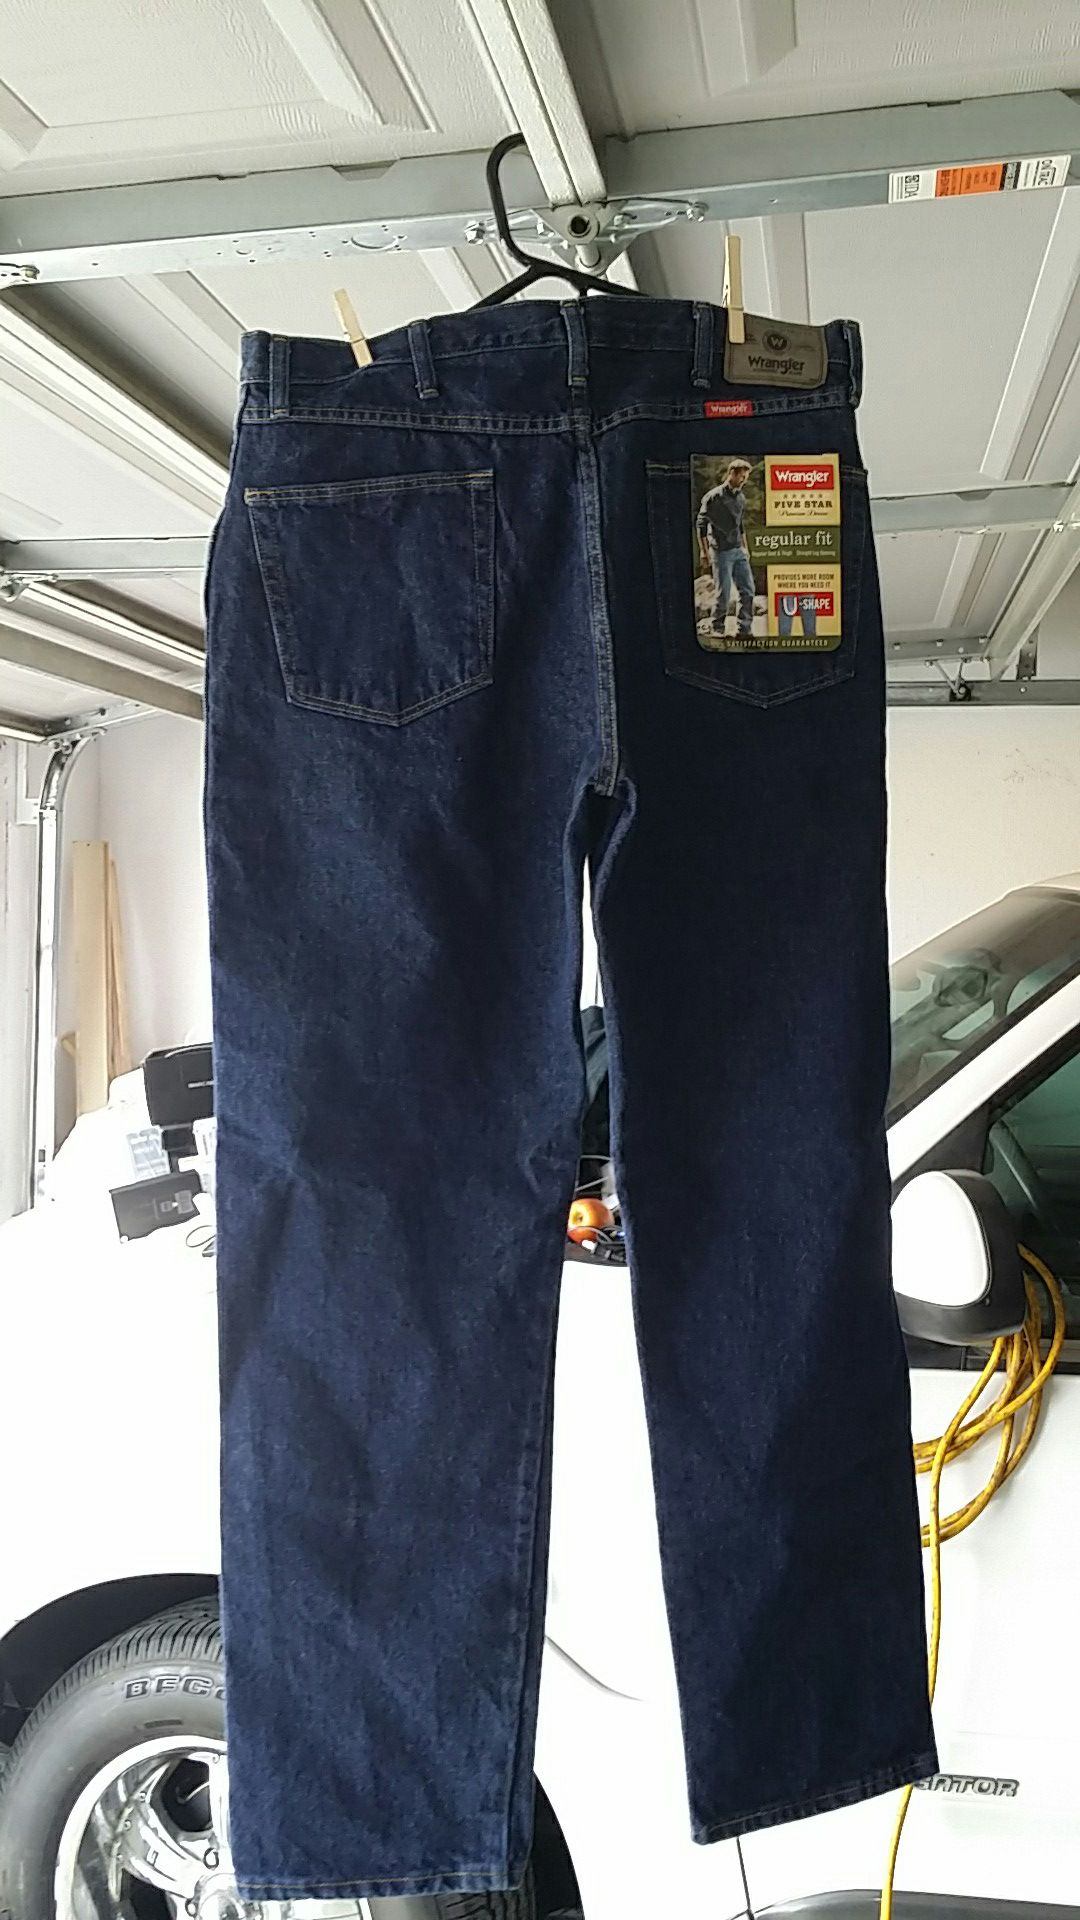 Jeans wrangler authentic regular fit size w36 l32 new